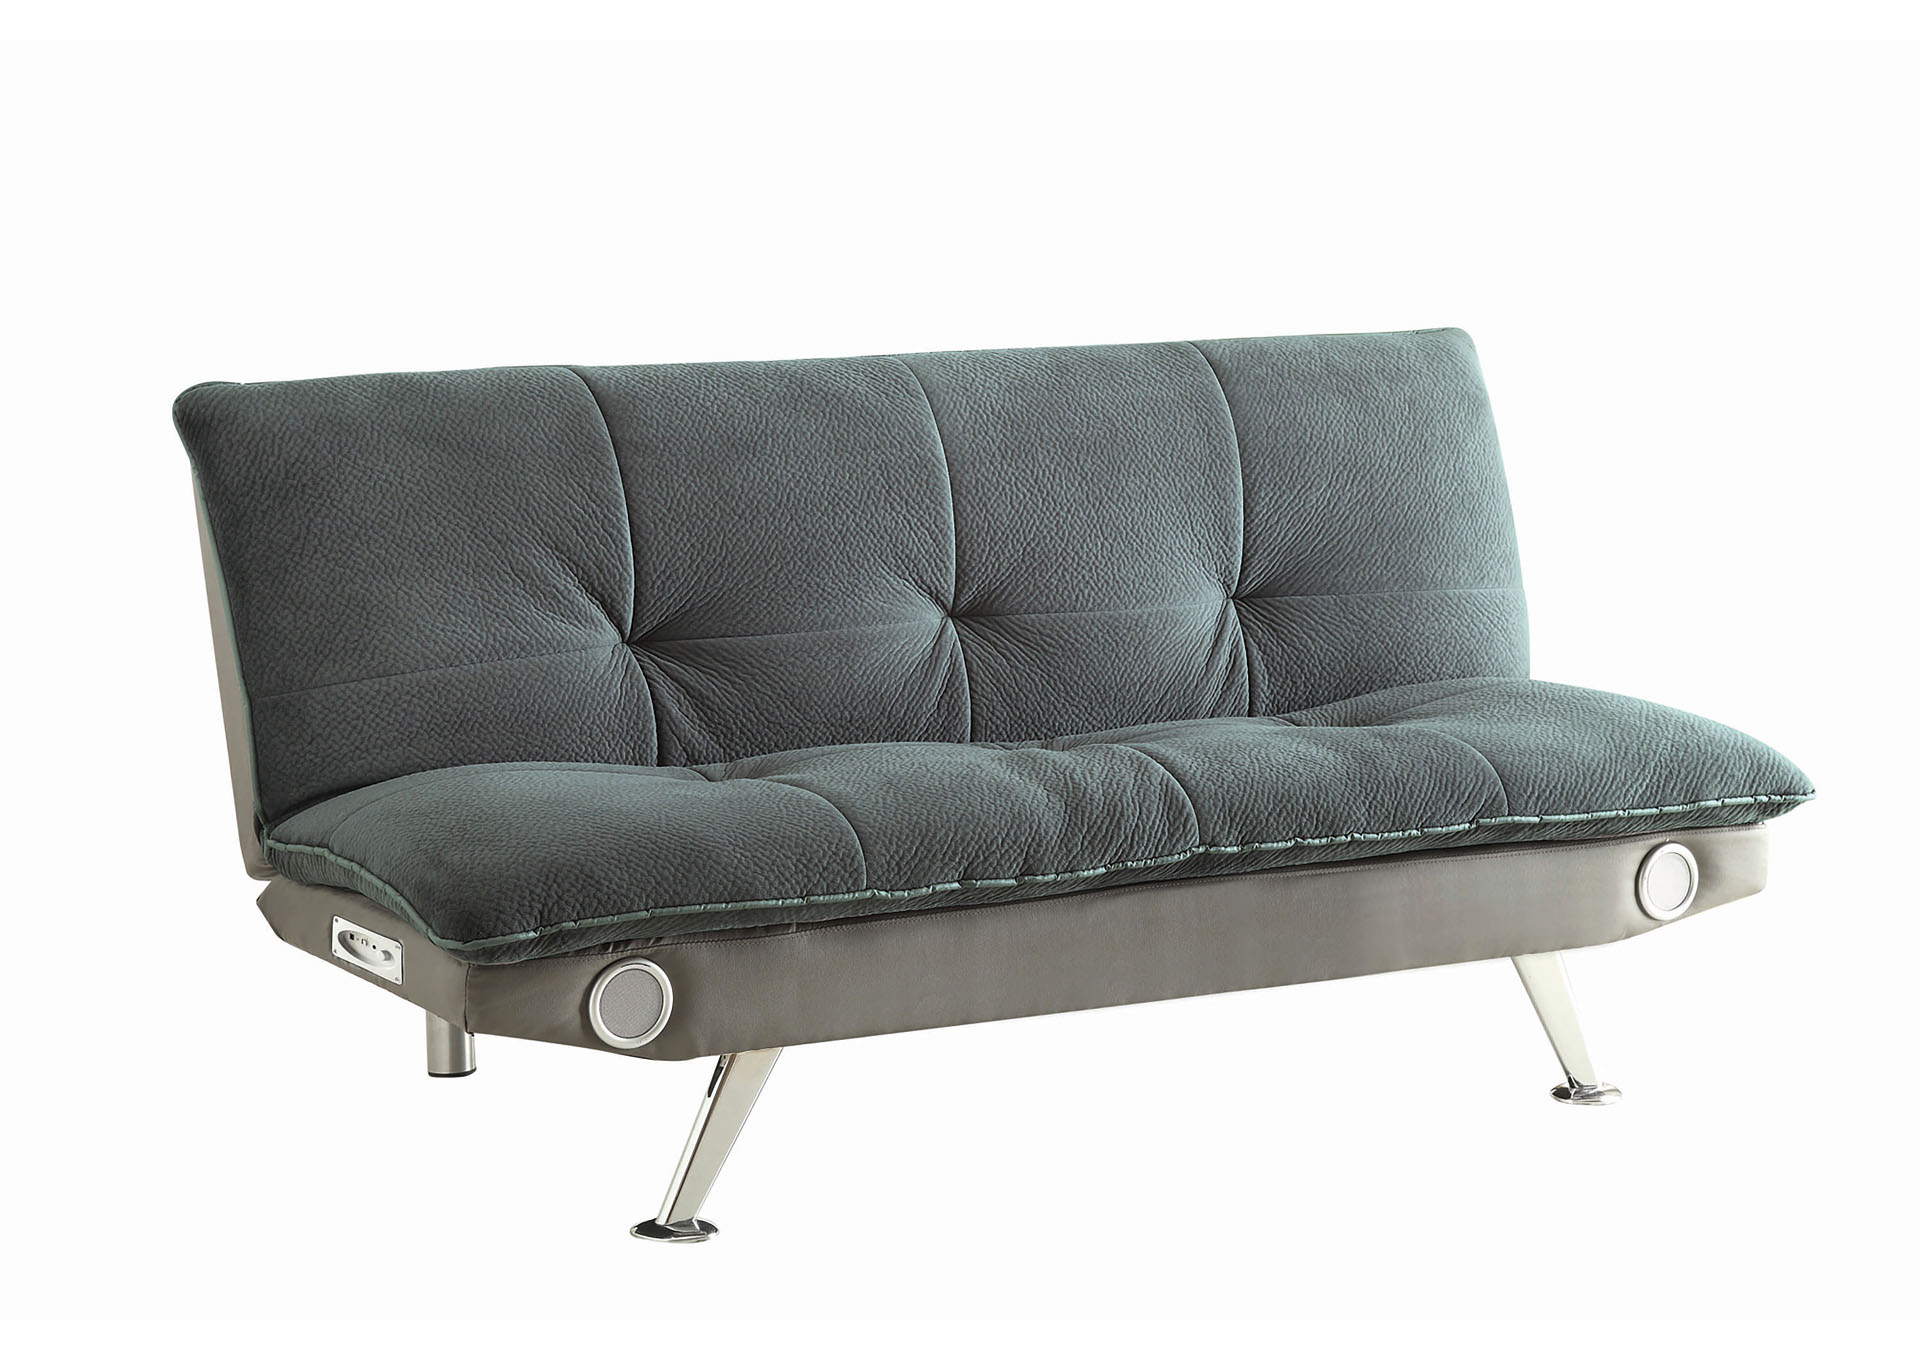 Grey Casual Grey Sofa Bed,Coaster Furniture